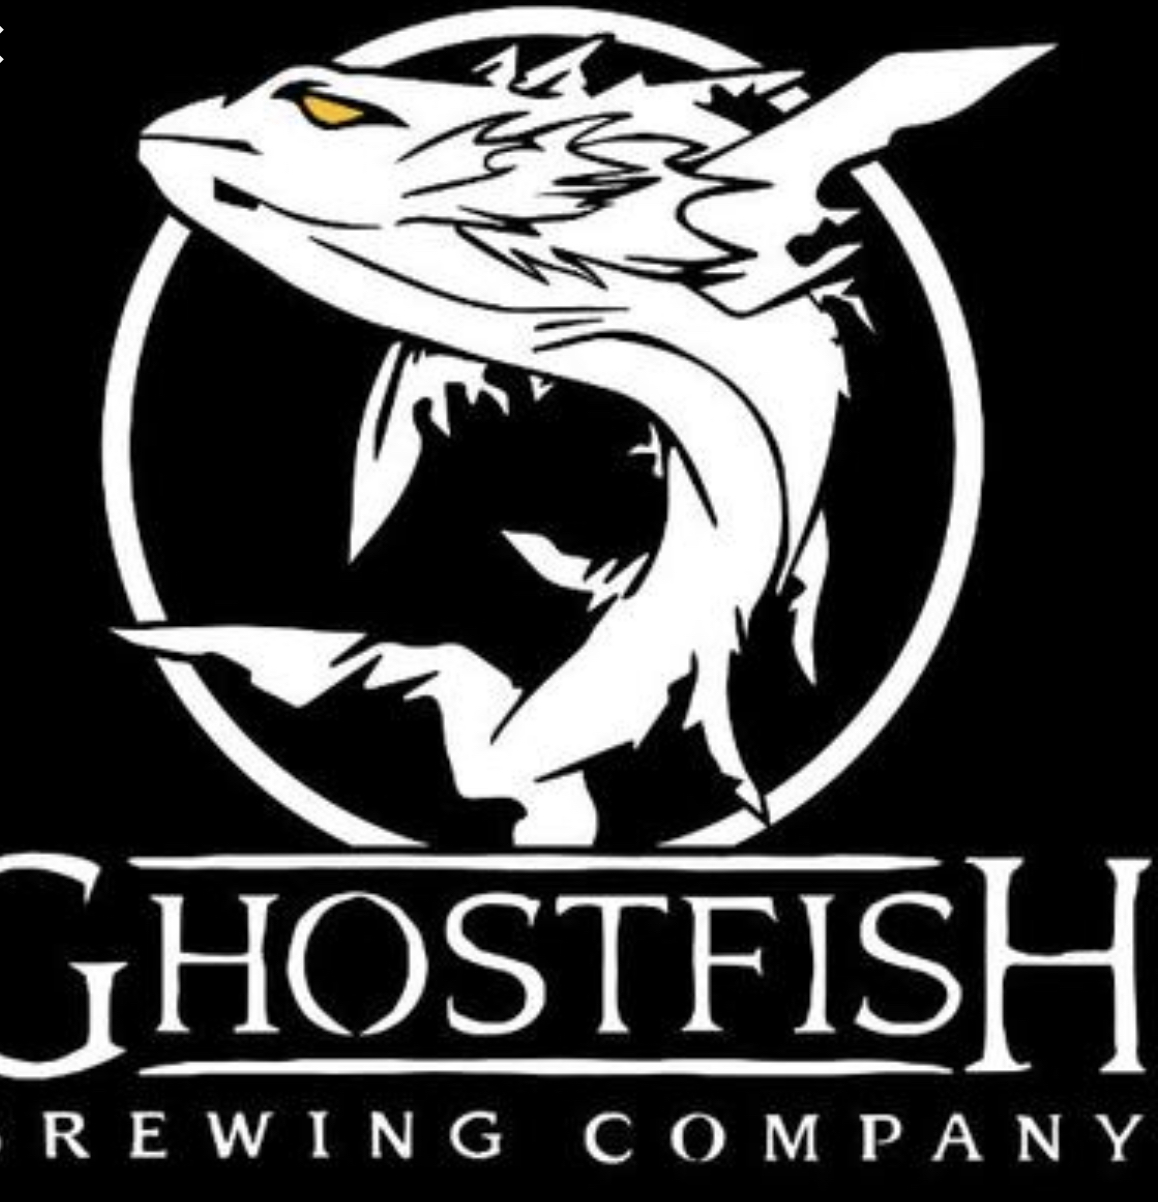 ghostfish brewing.jpg